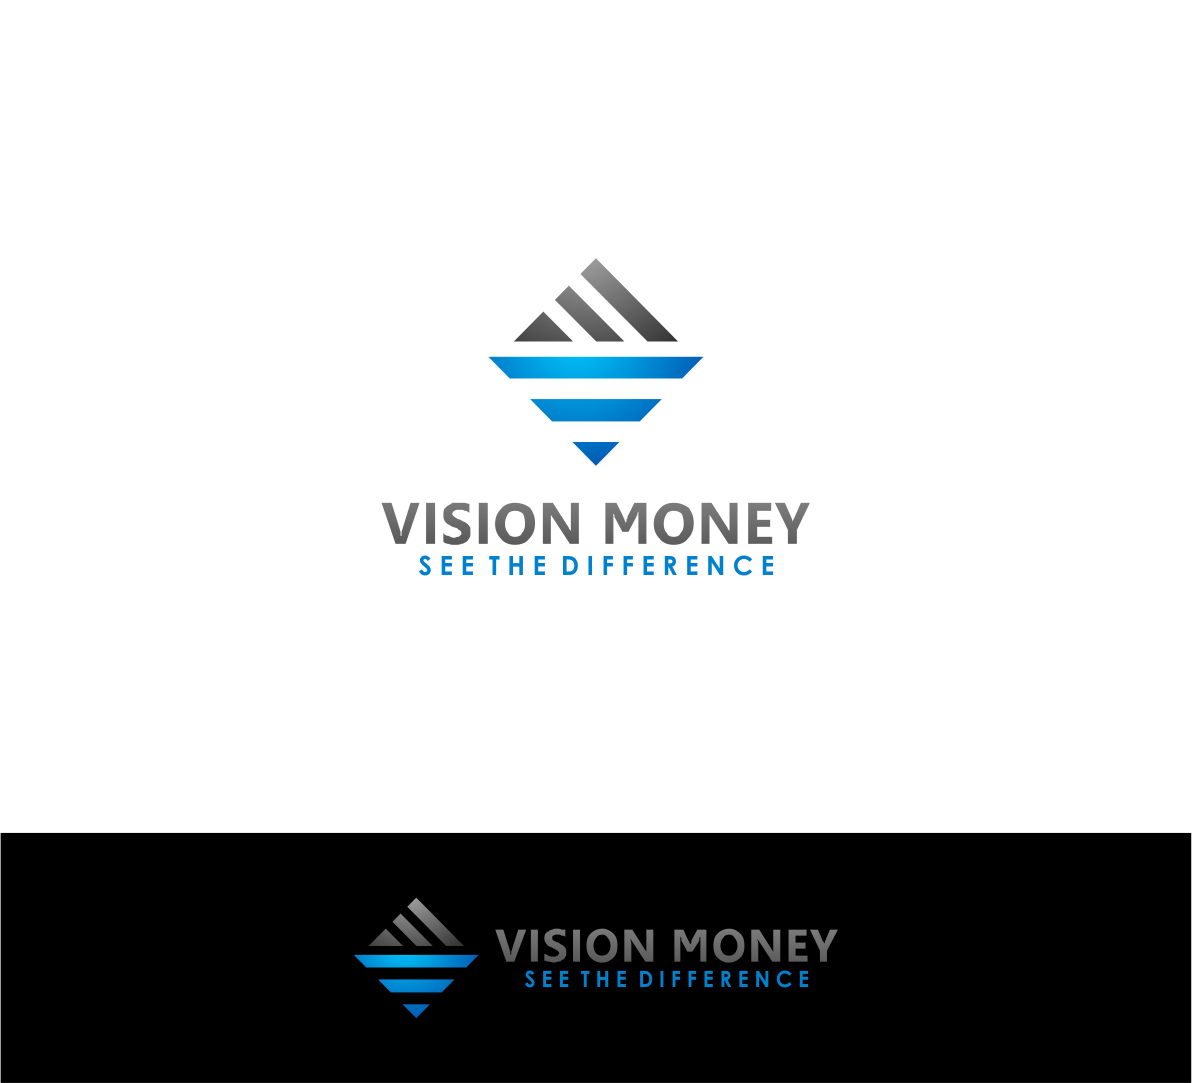 Logo Design by haidu - Entry No. 30 in the Logo Design Contest Captivating Logo Design for VISION MONEY.